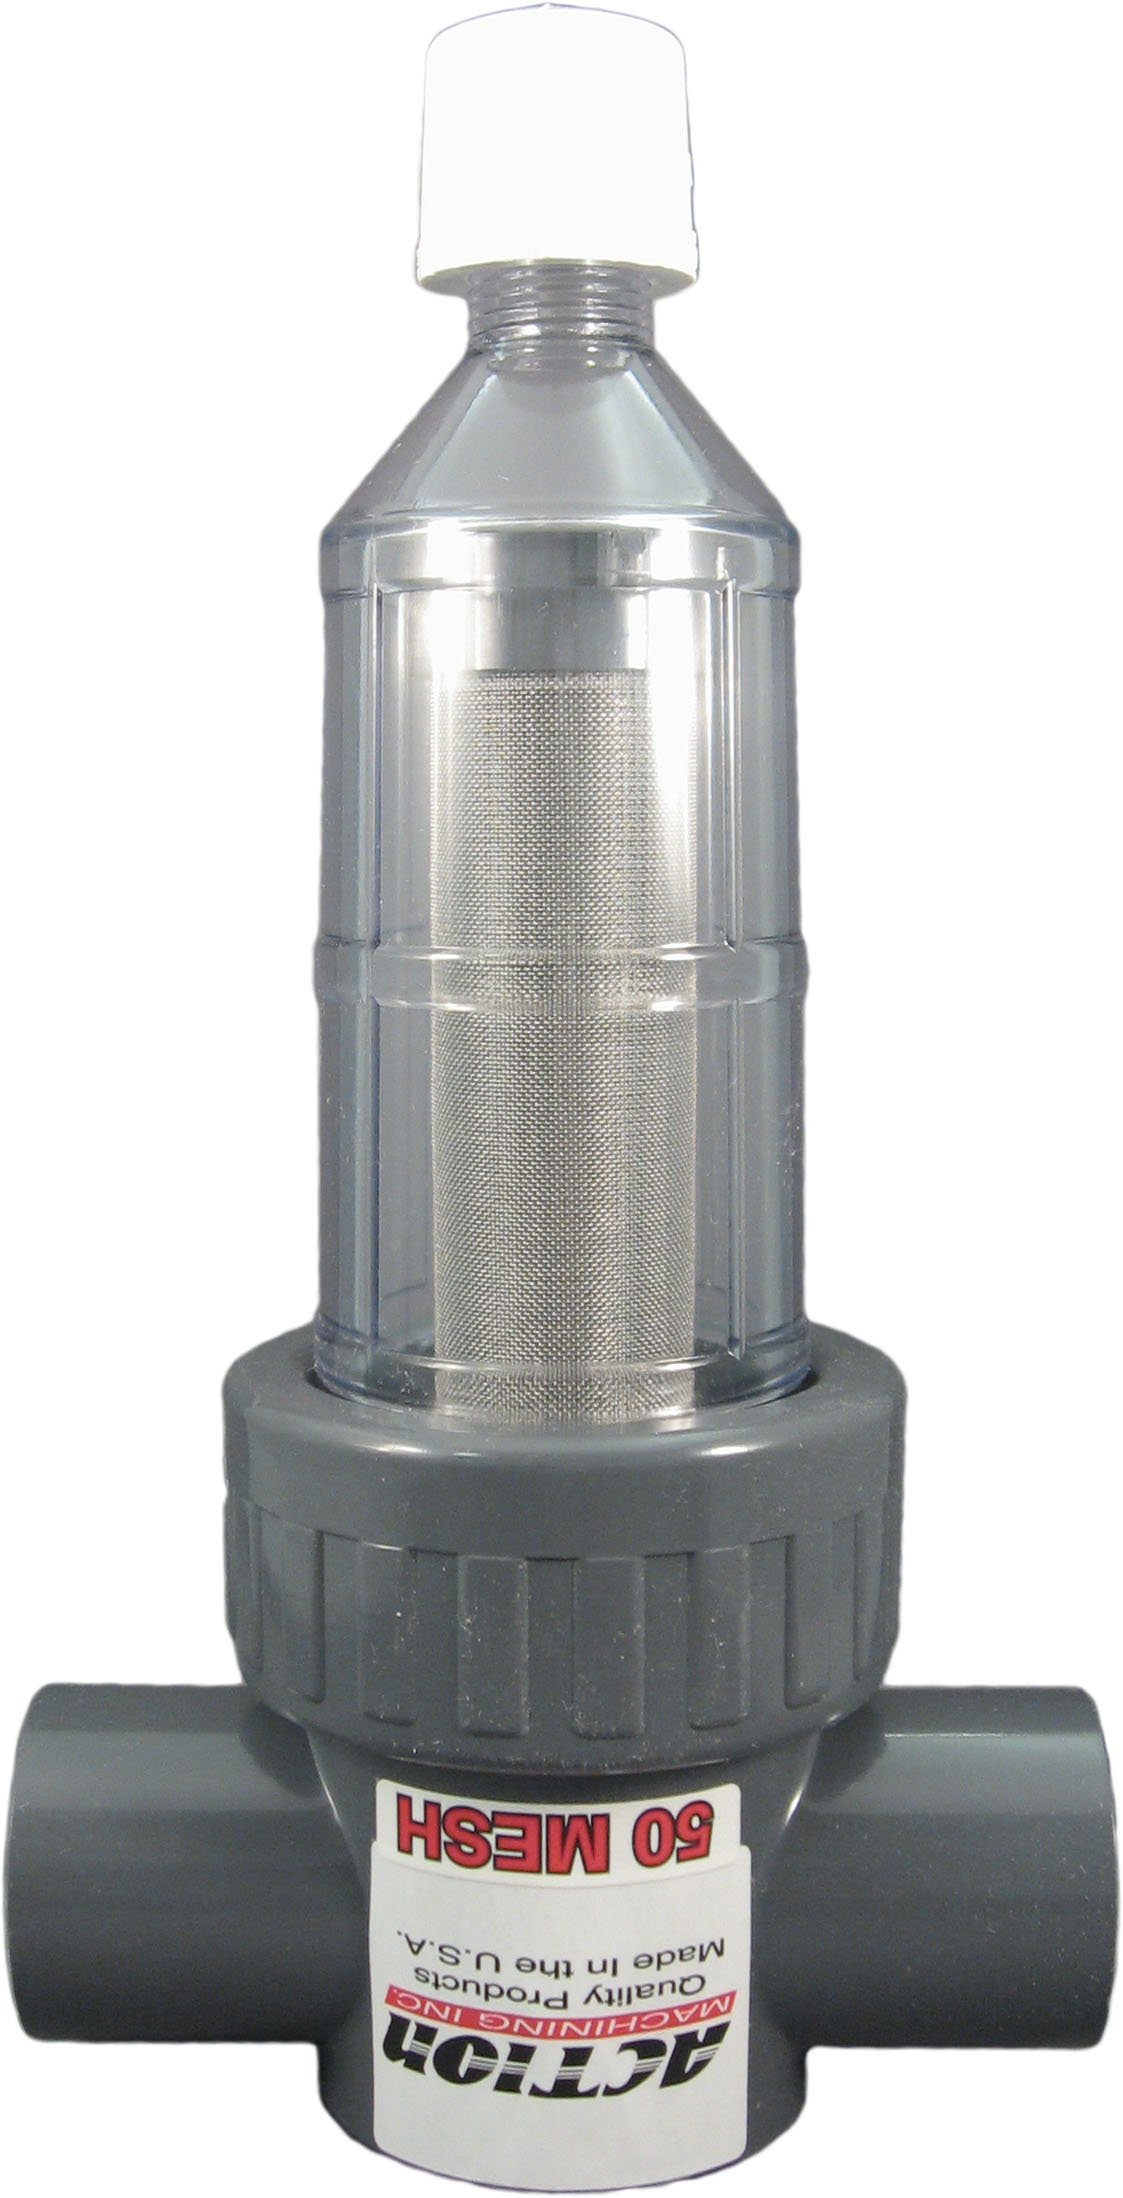 Action AFI-1.0-50 1'' 50-Mesh Irrigation Filter by Action Filter